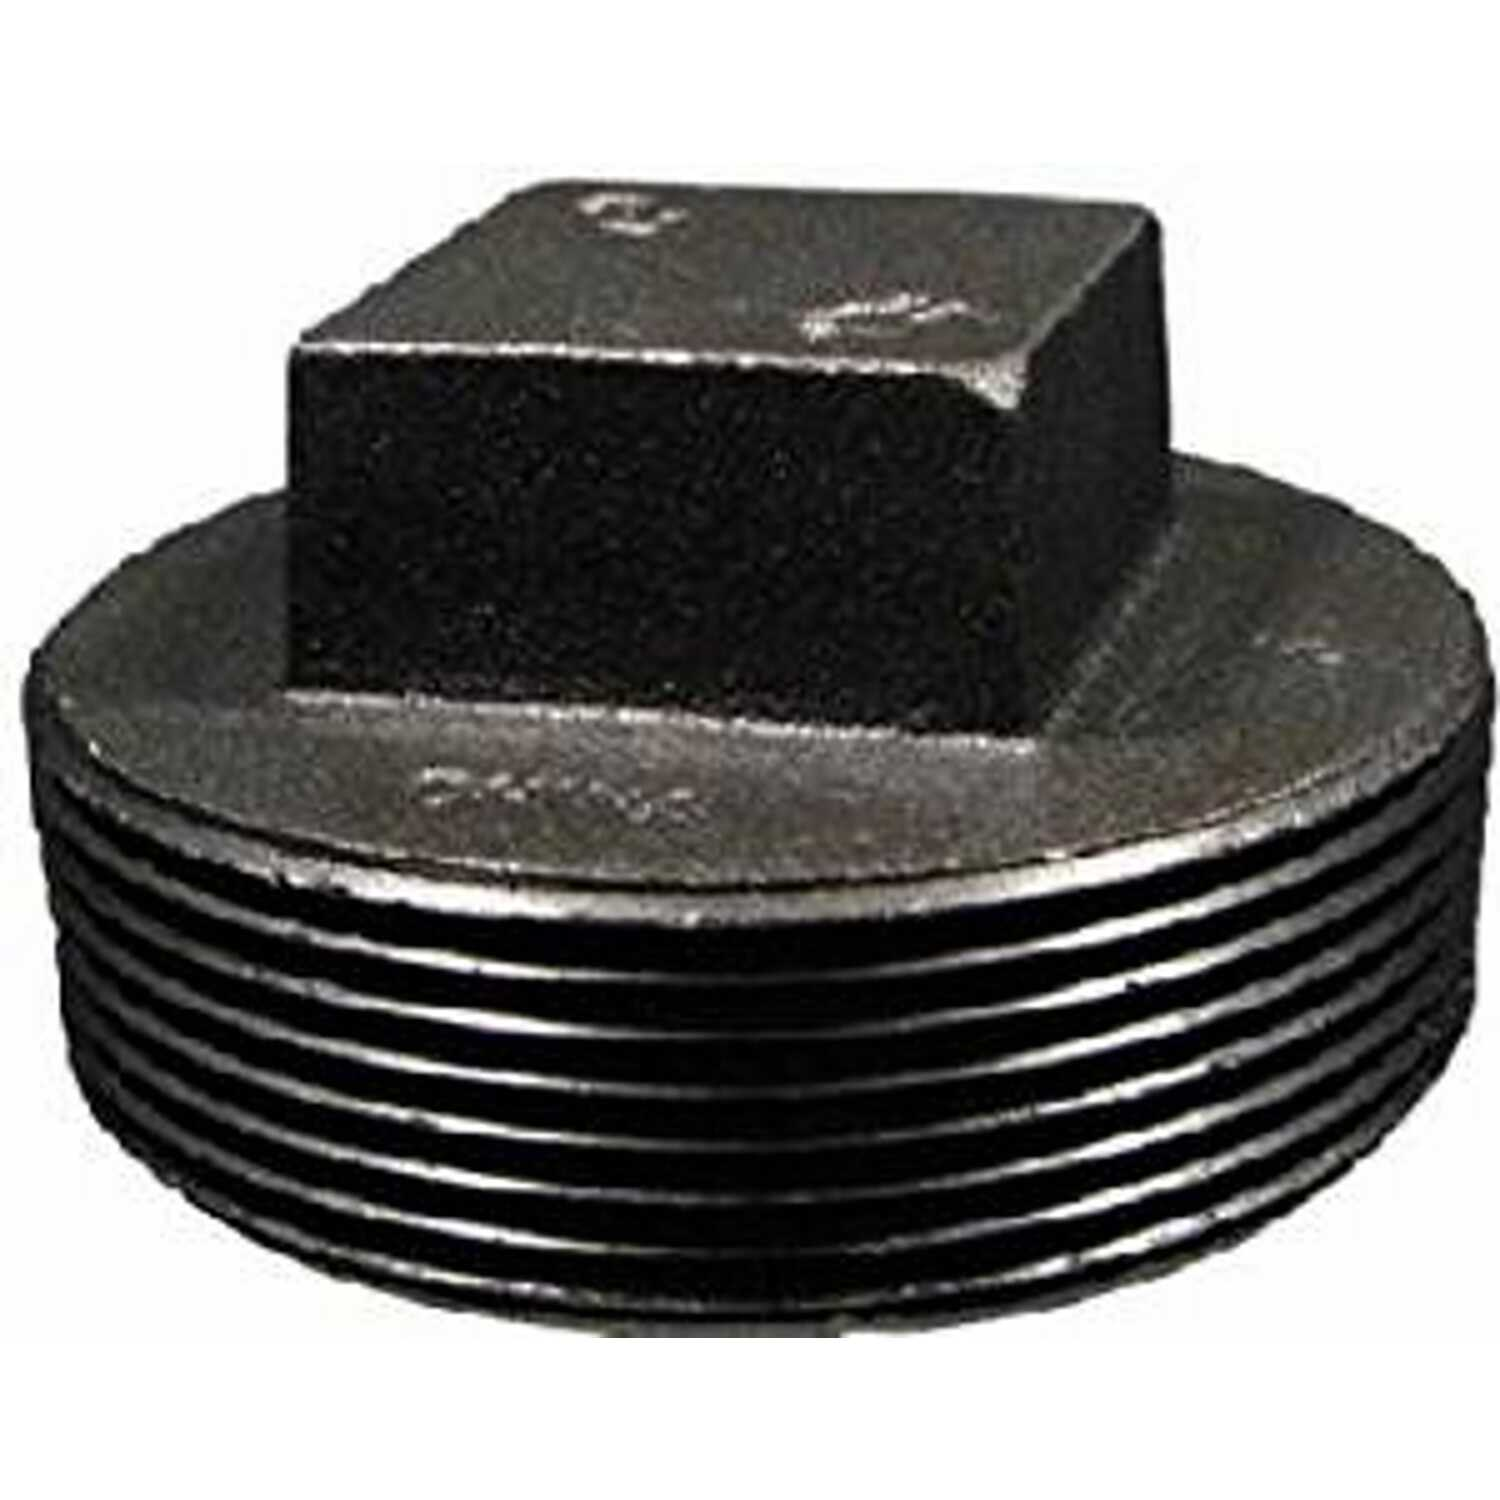 BK Products  Southland  2-1/2 in. MPT   x 2-1/2 in. L Black  Malleable Iron  Square Plug Head